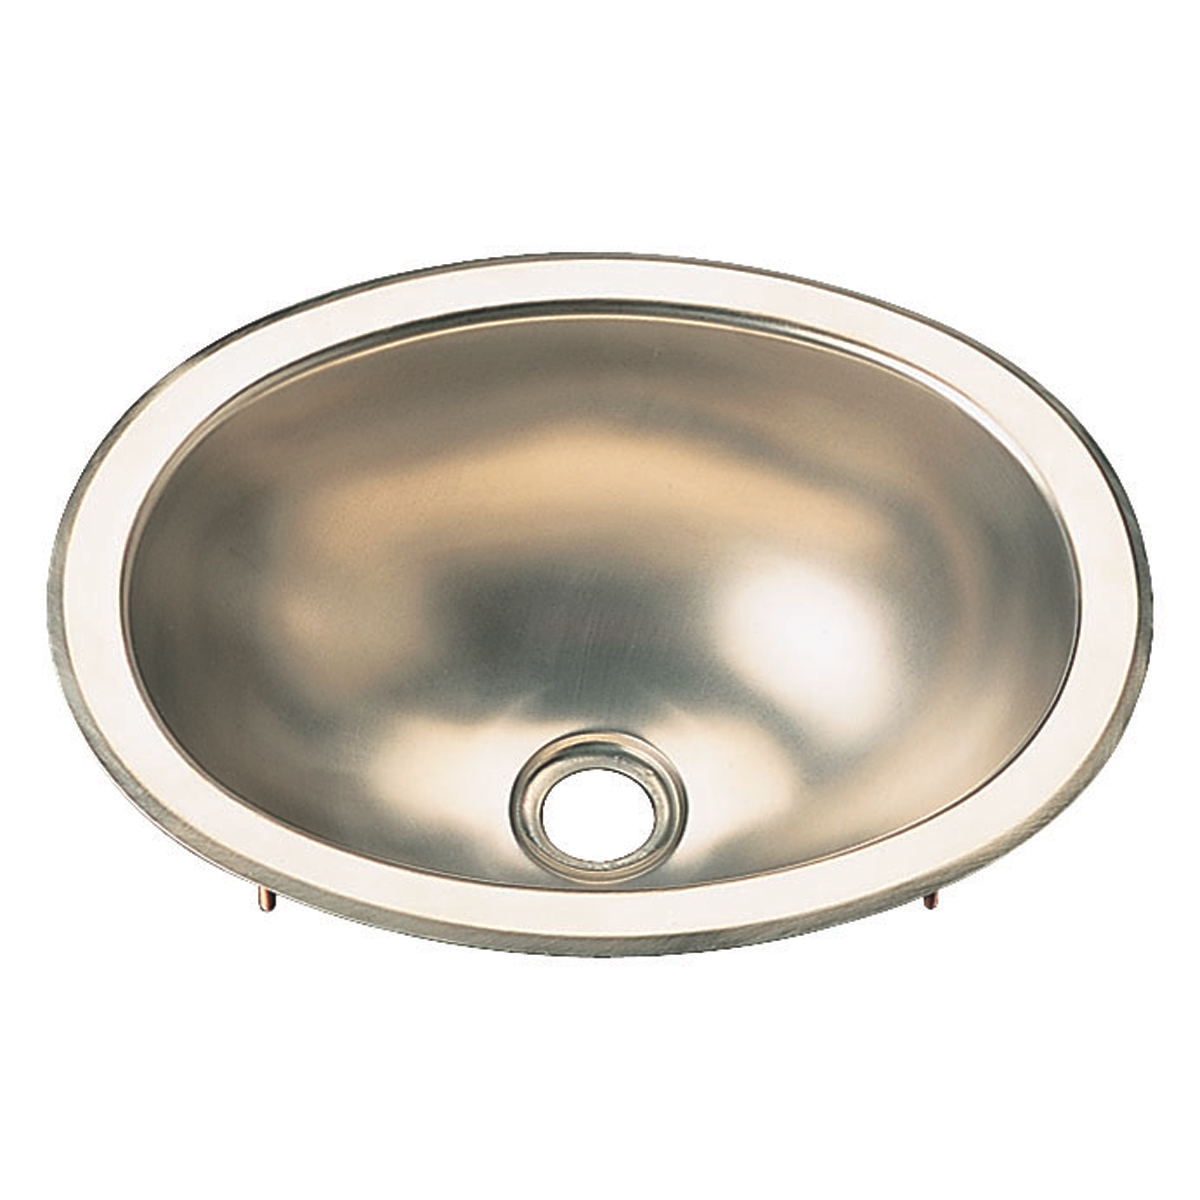 Faucets, Sinks -AMPAND- Drains